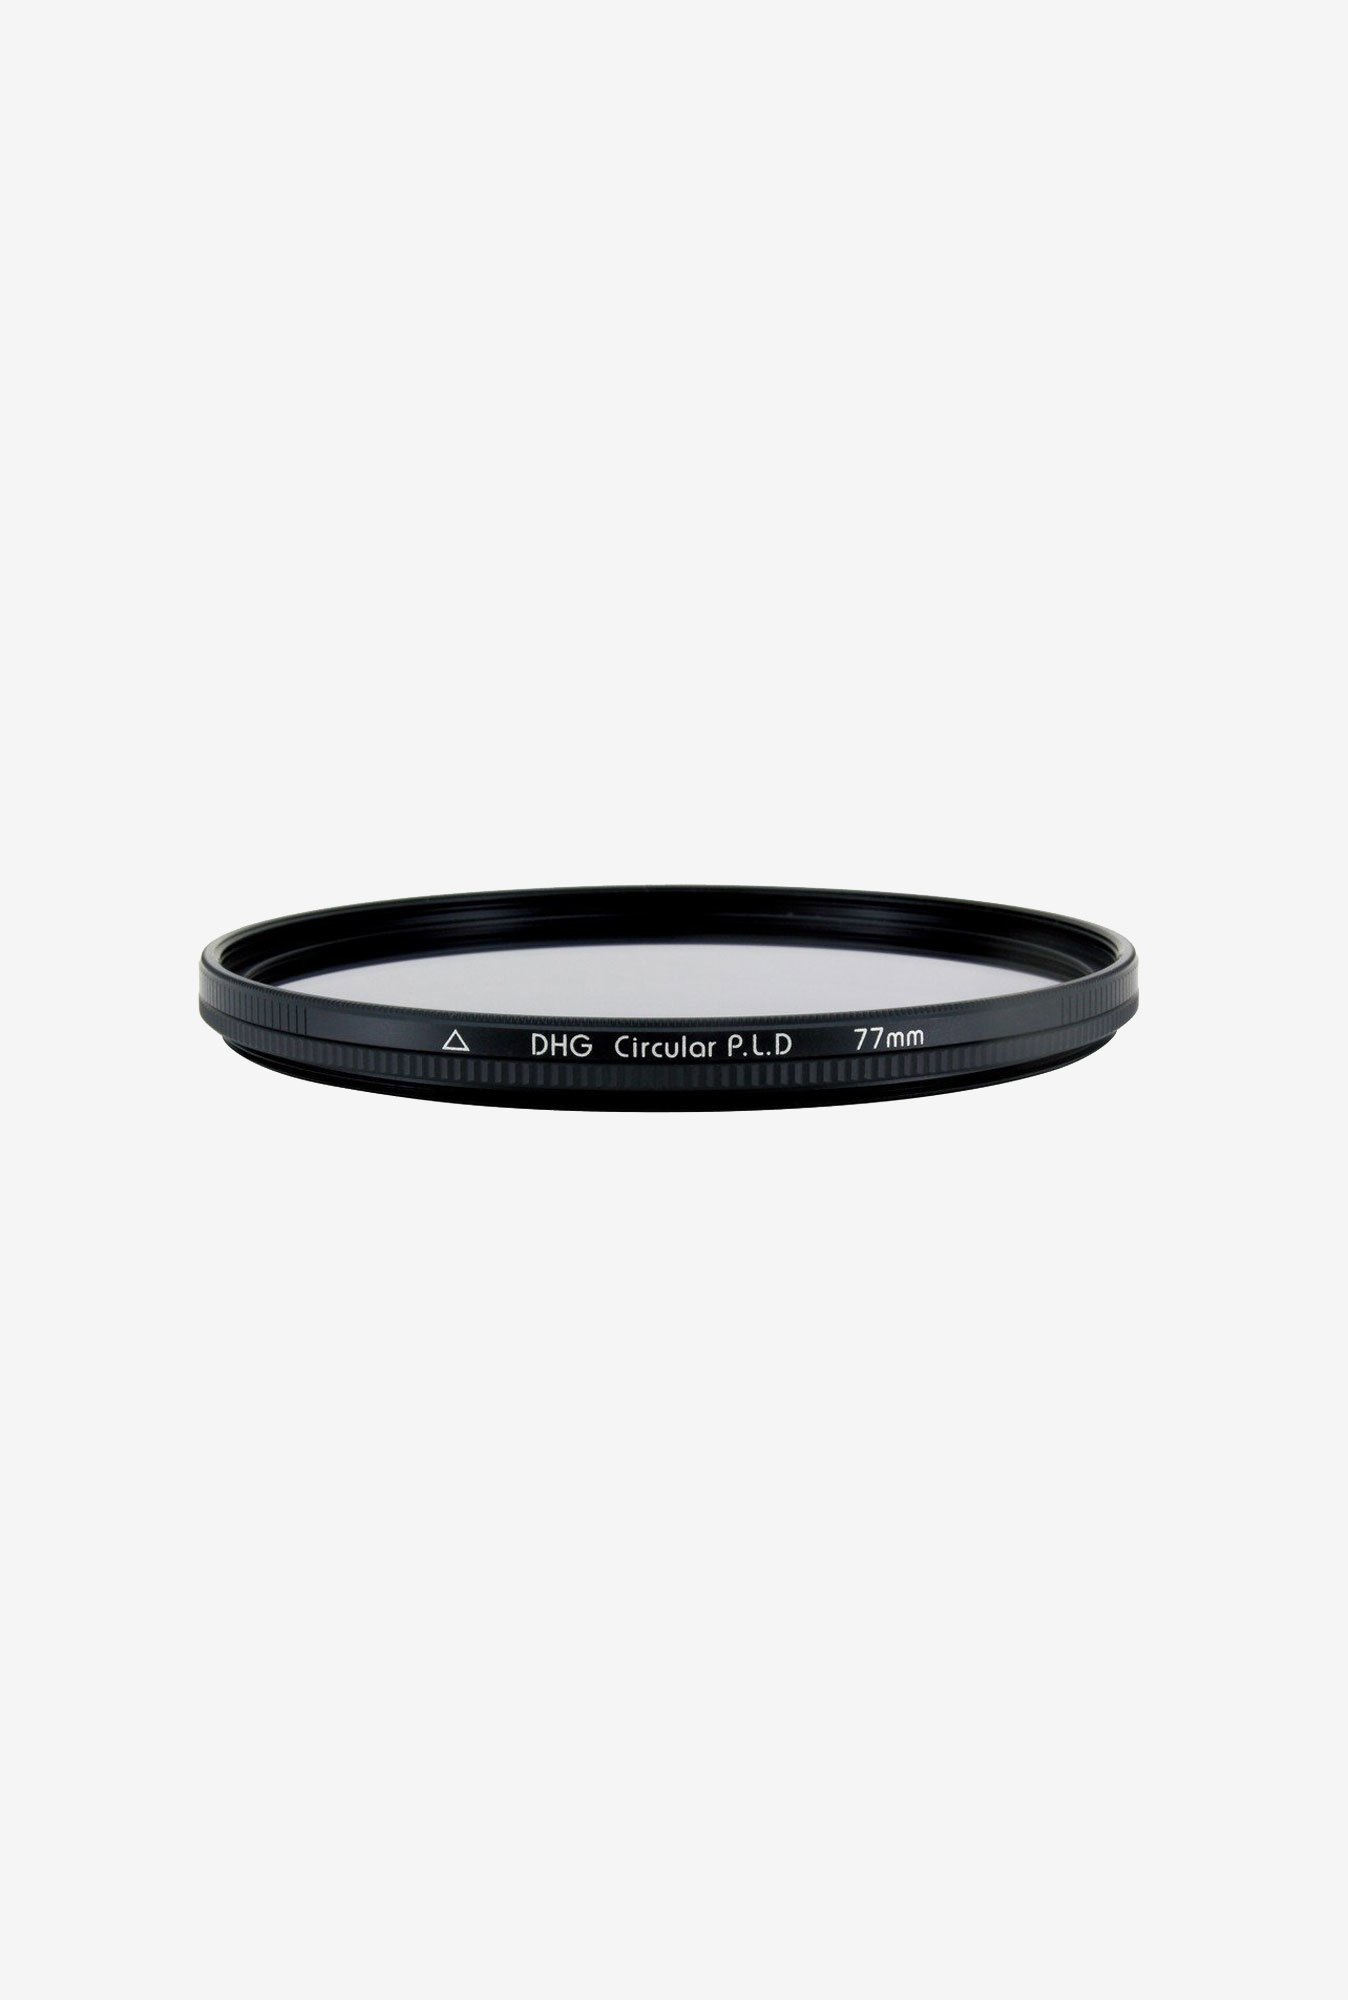 Marumi 77mm DHG Circular Polarizer Filter (Black)